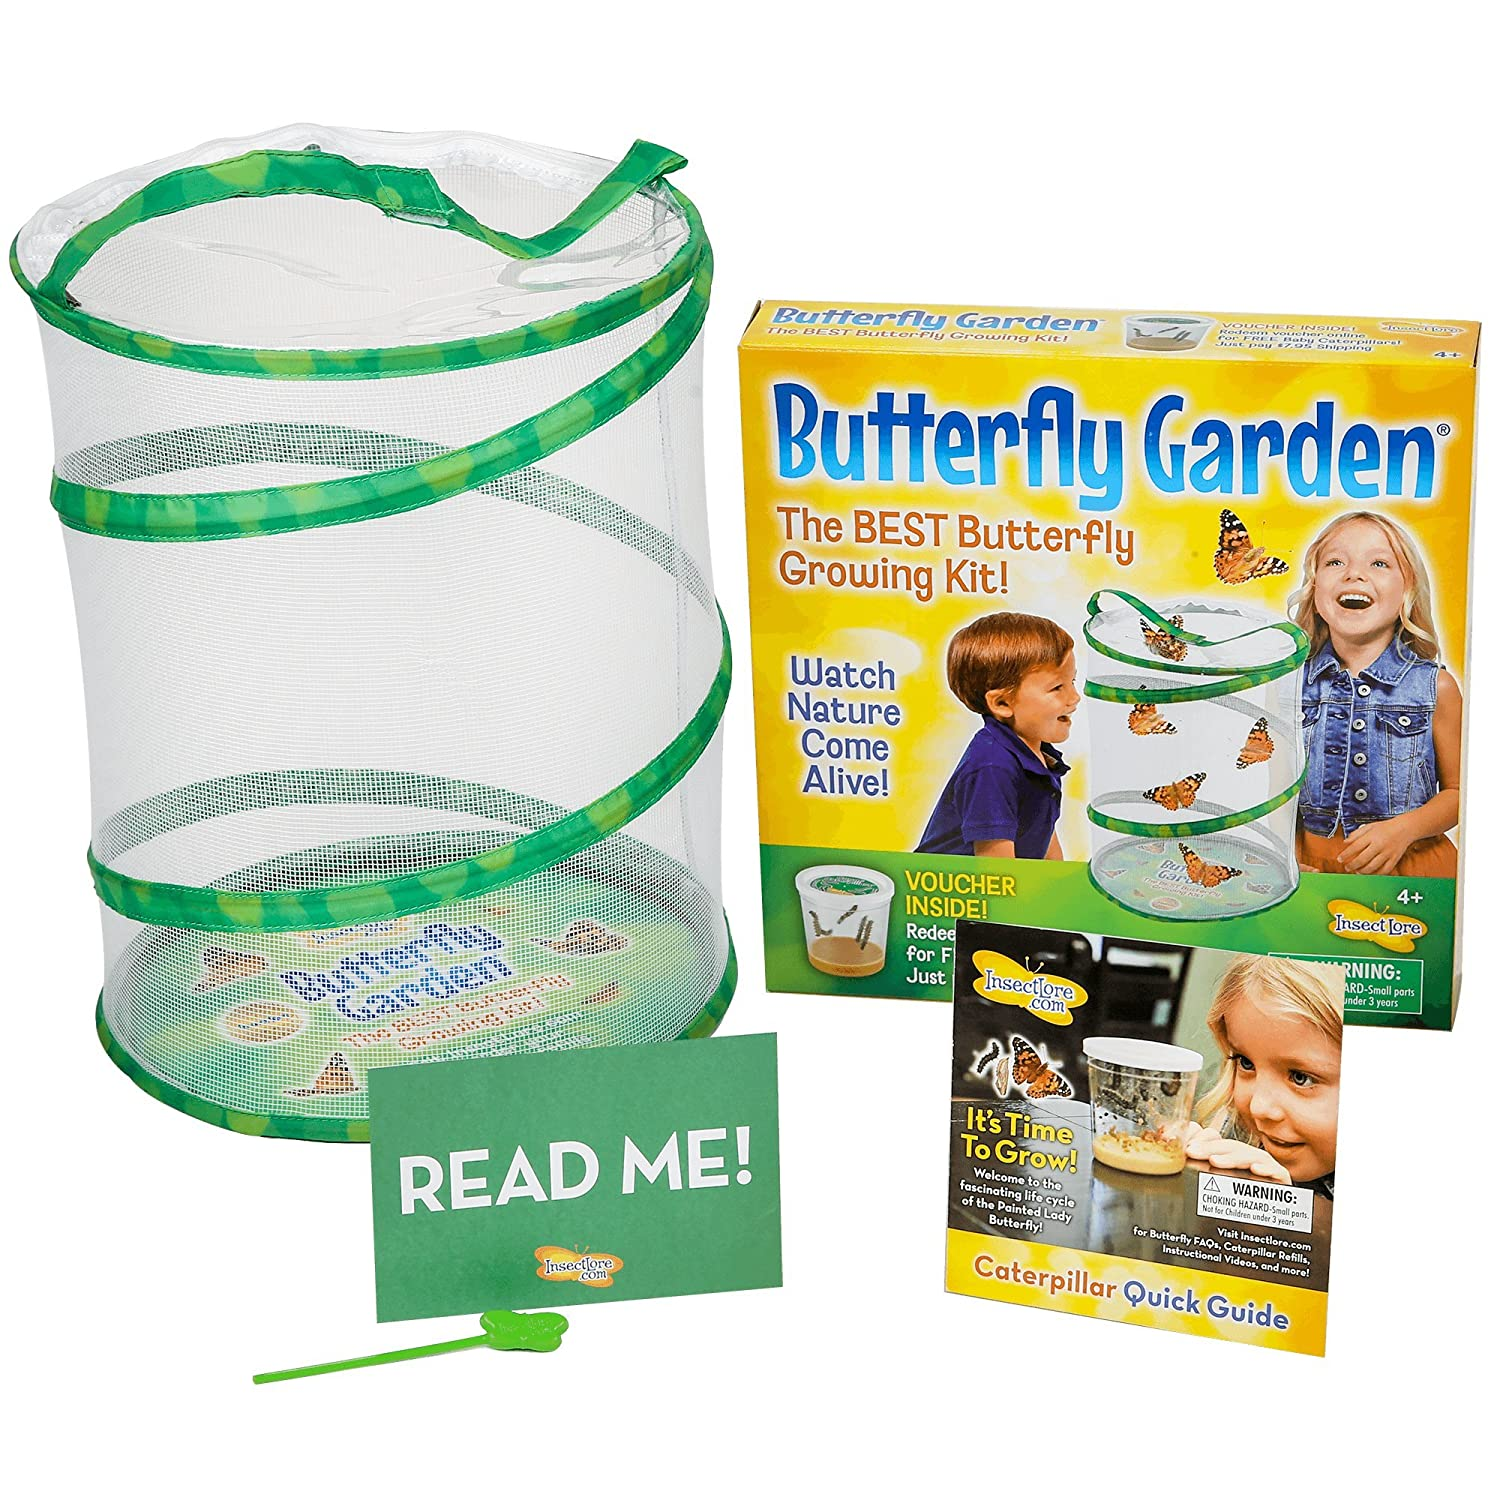 a review on insect lore live butterfly garden - Live Butterfly Garden